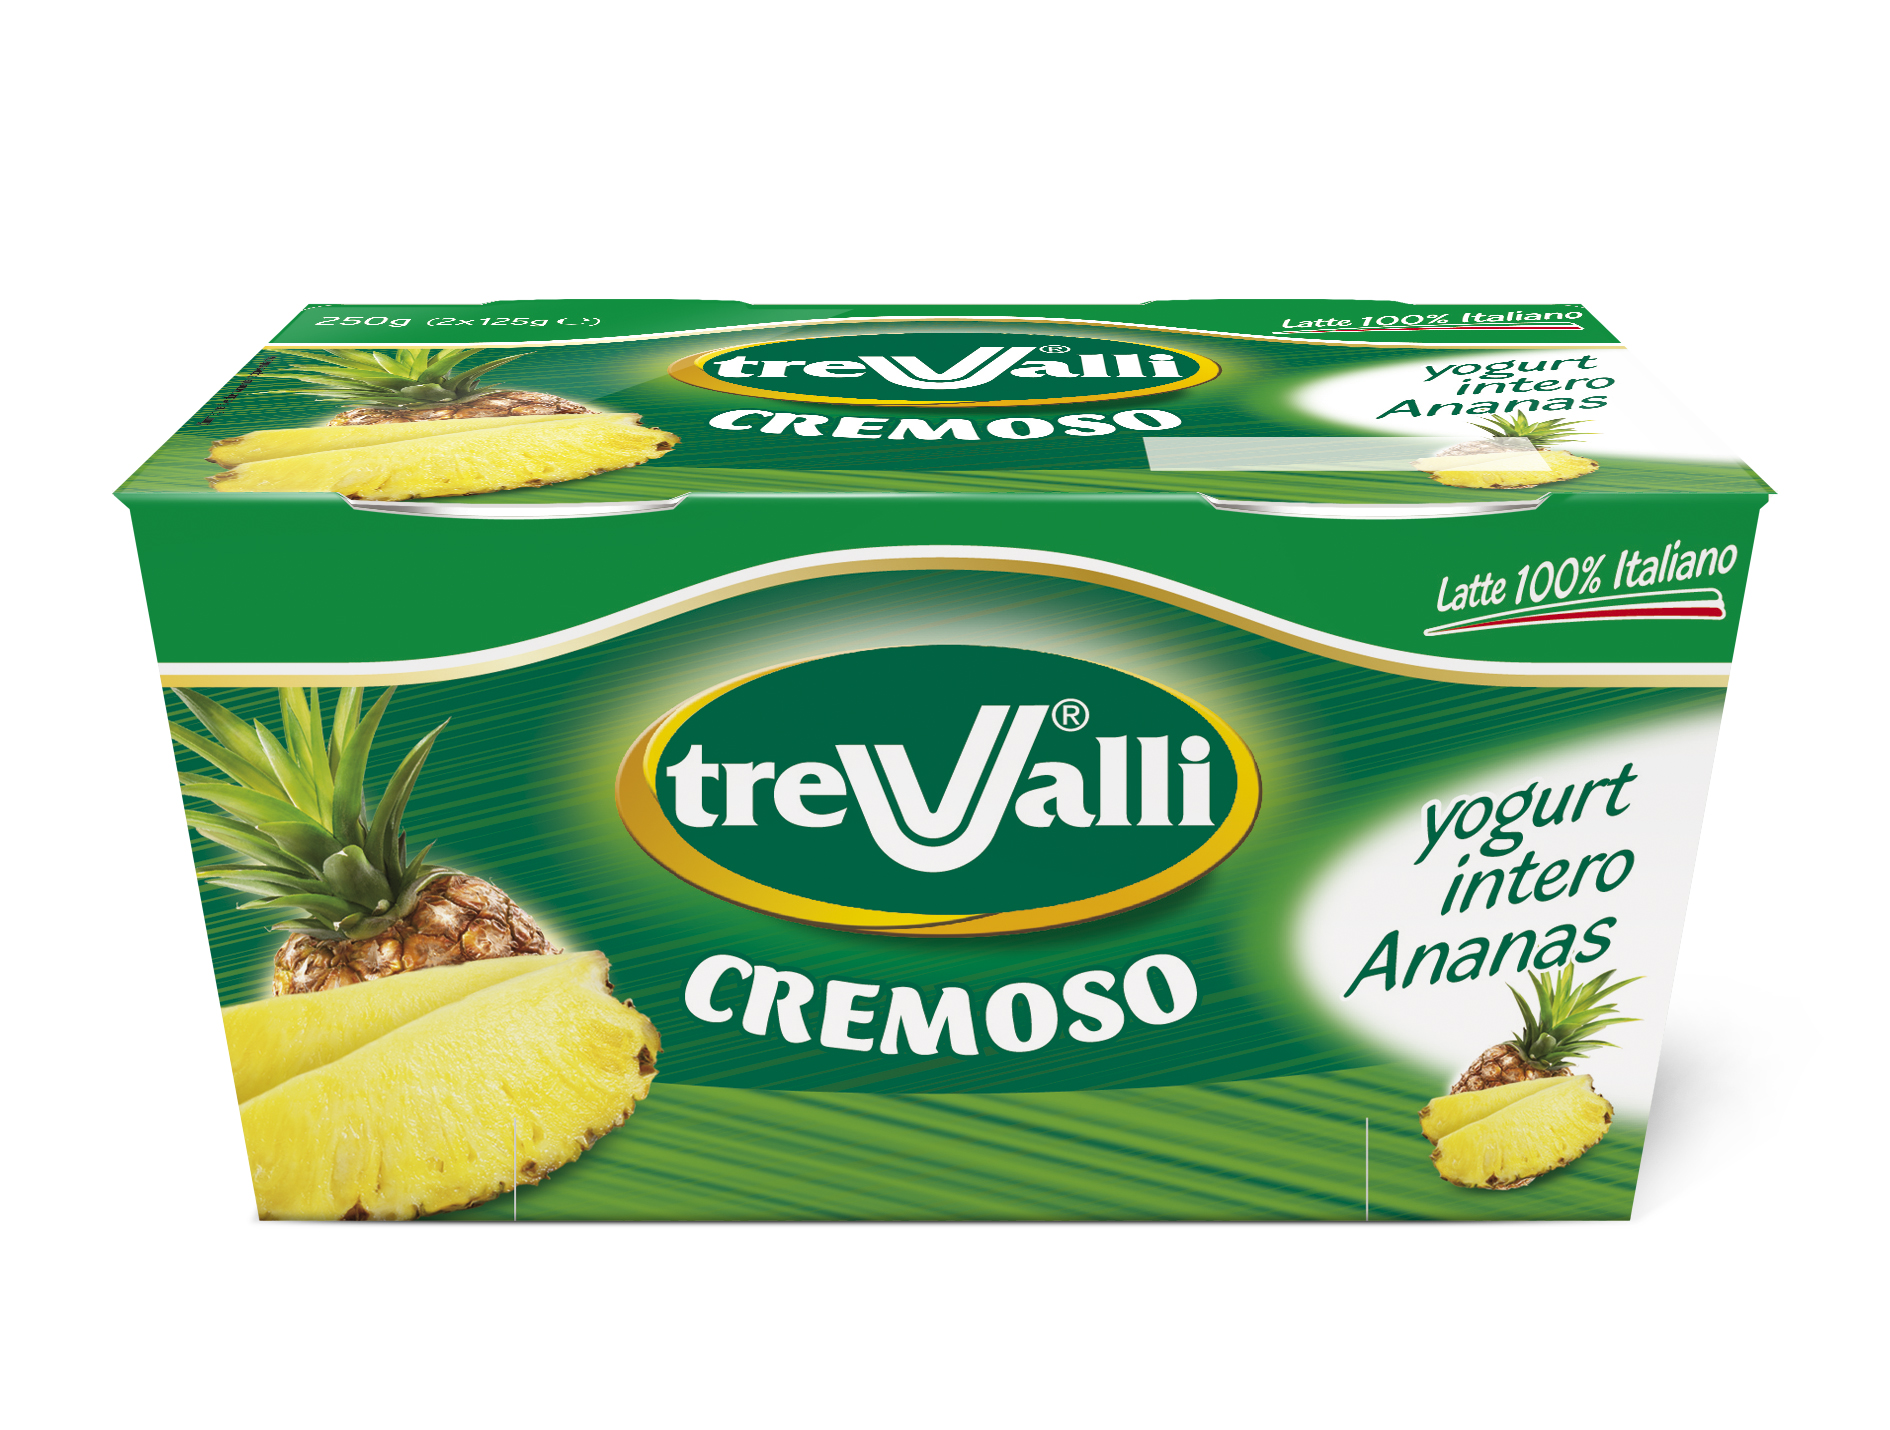 Yogurt Intero Cremoso all'Ananas Trevalli